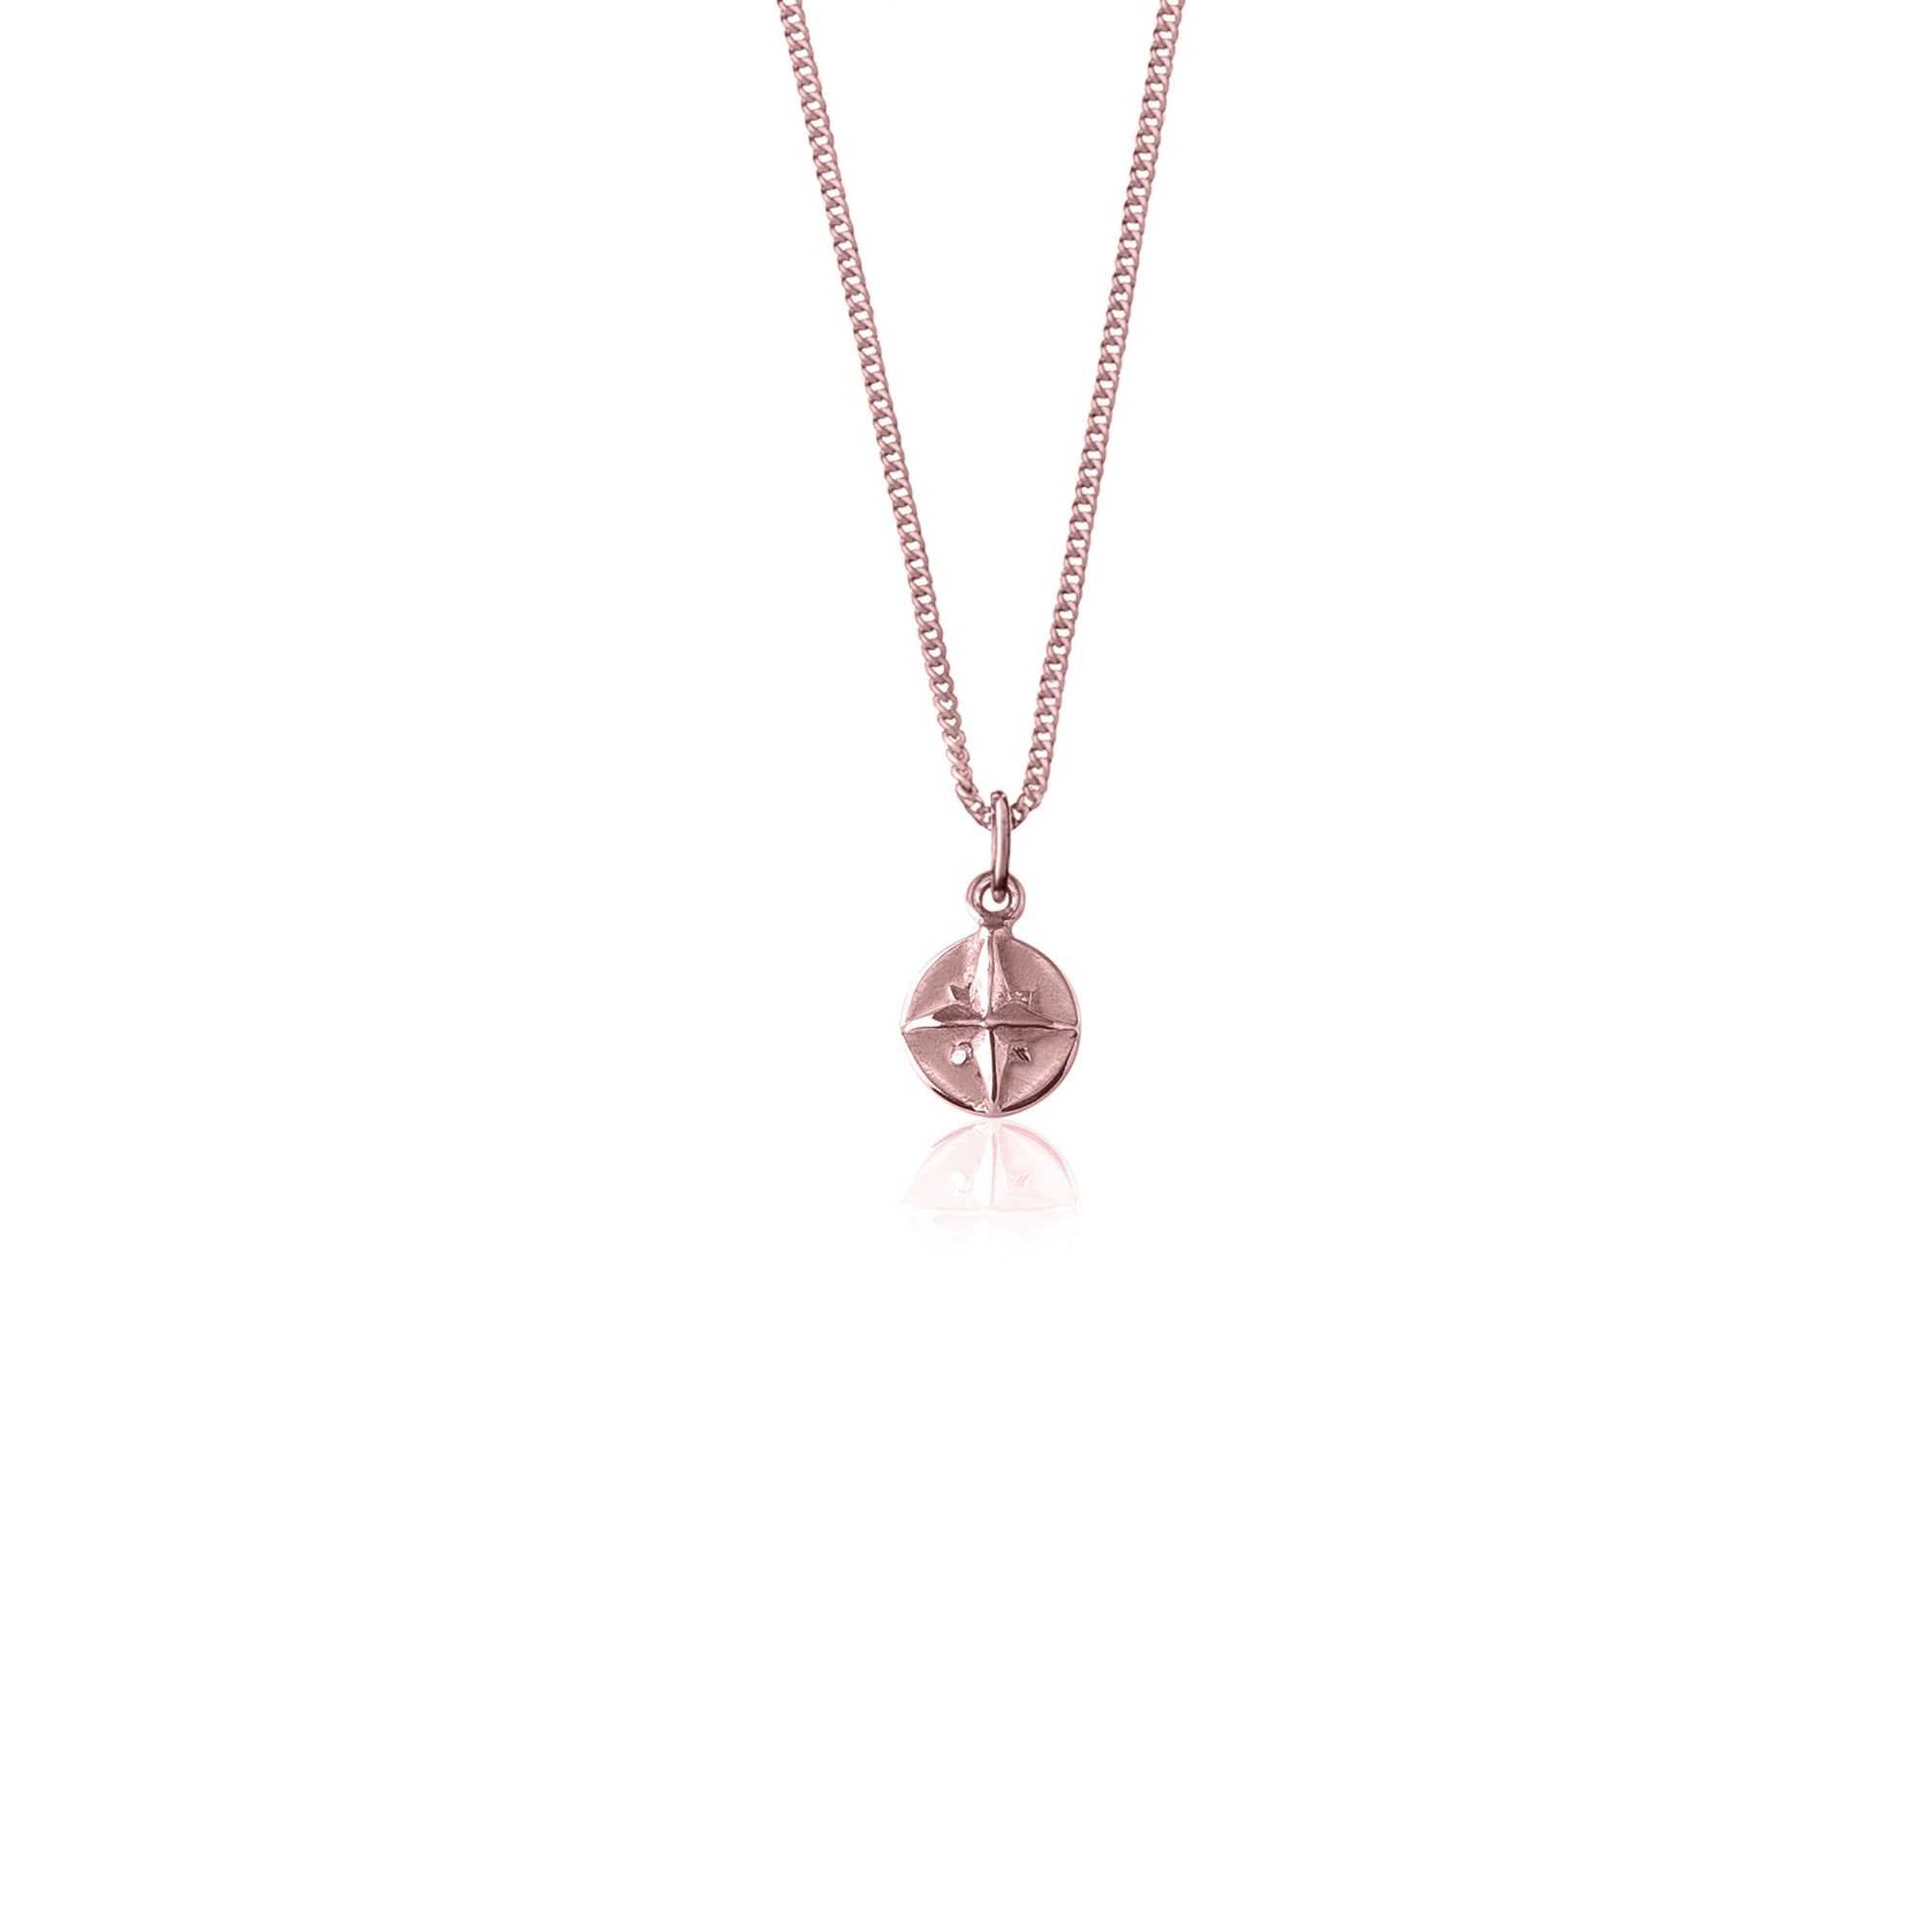 Born to Roam Necklace (Rose Gold)